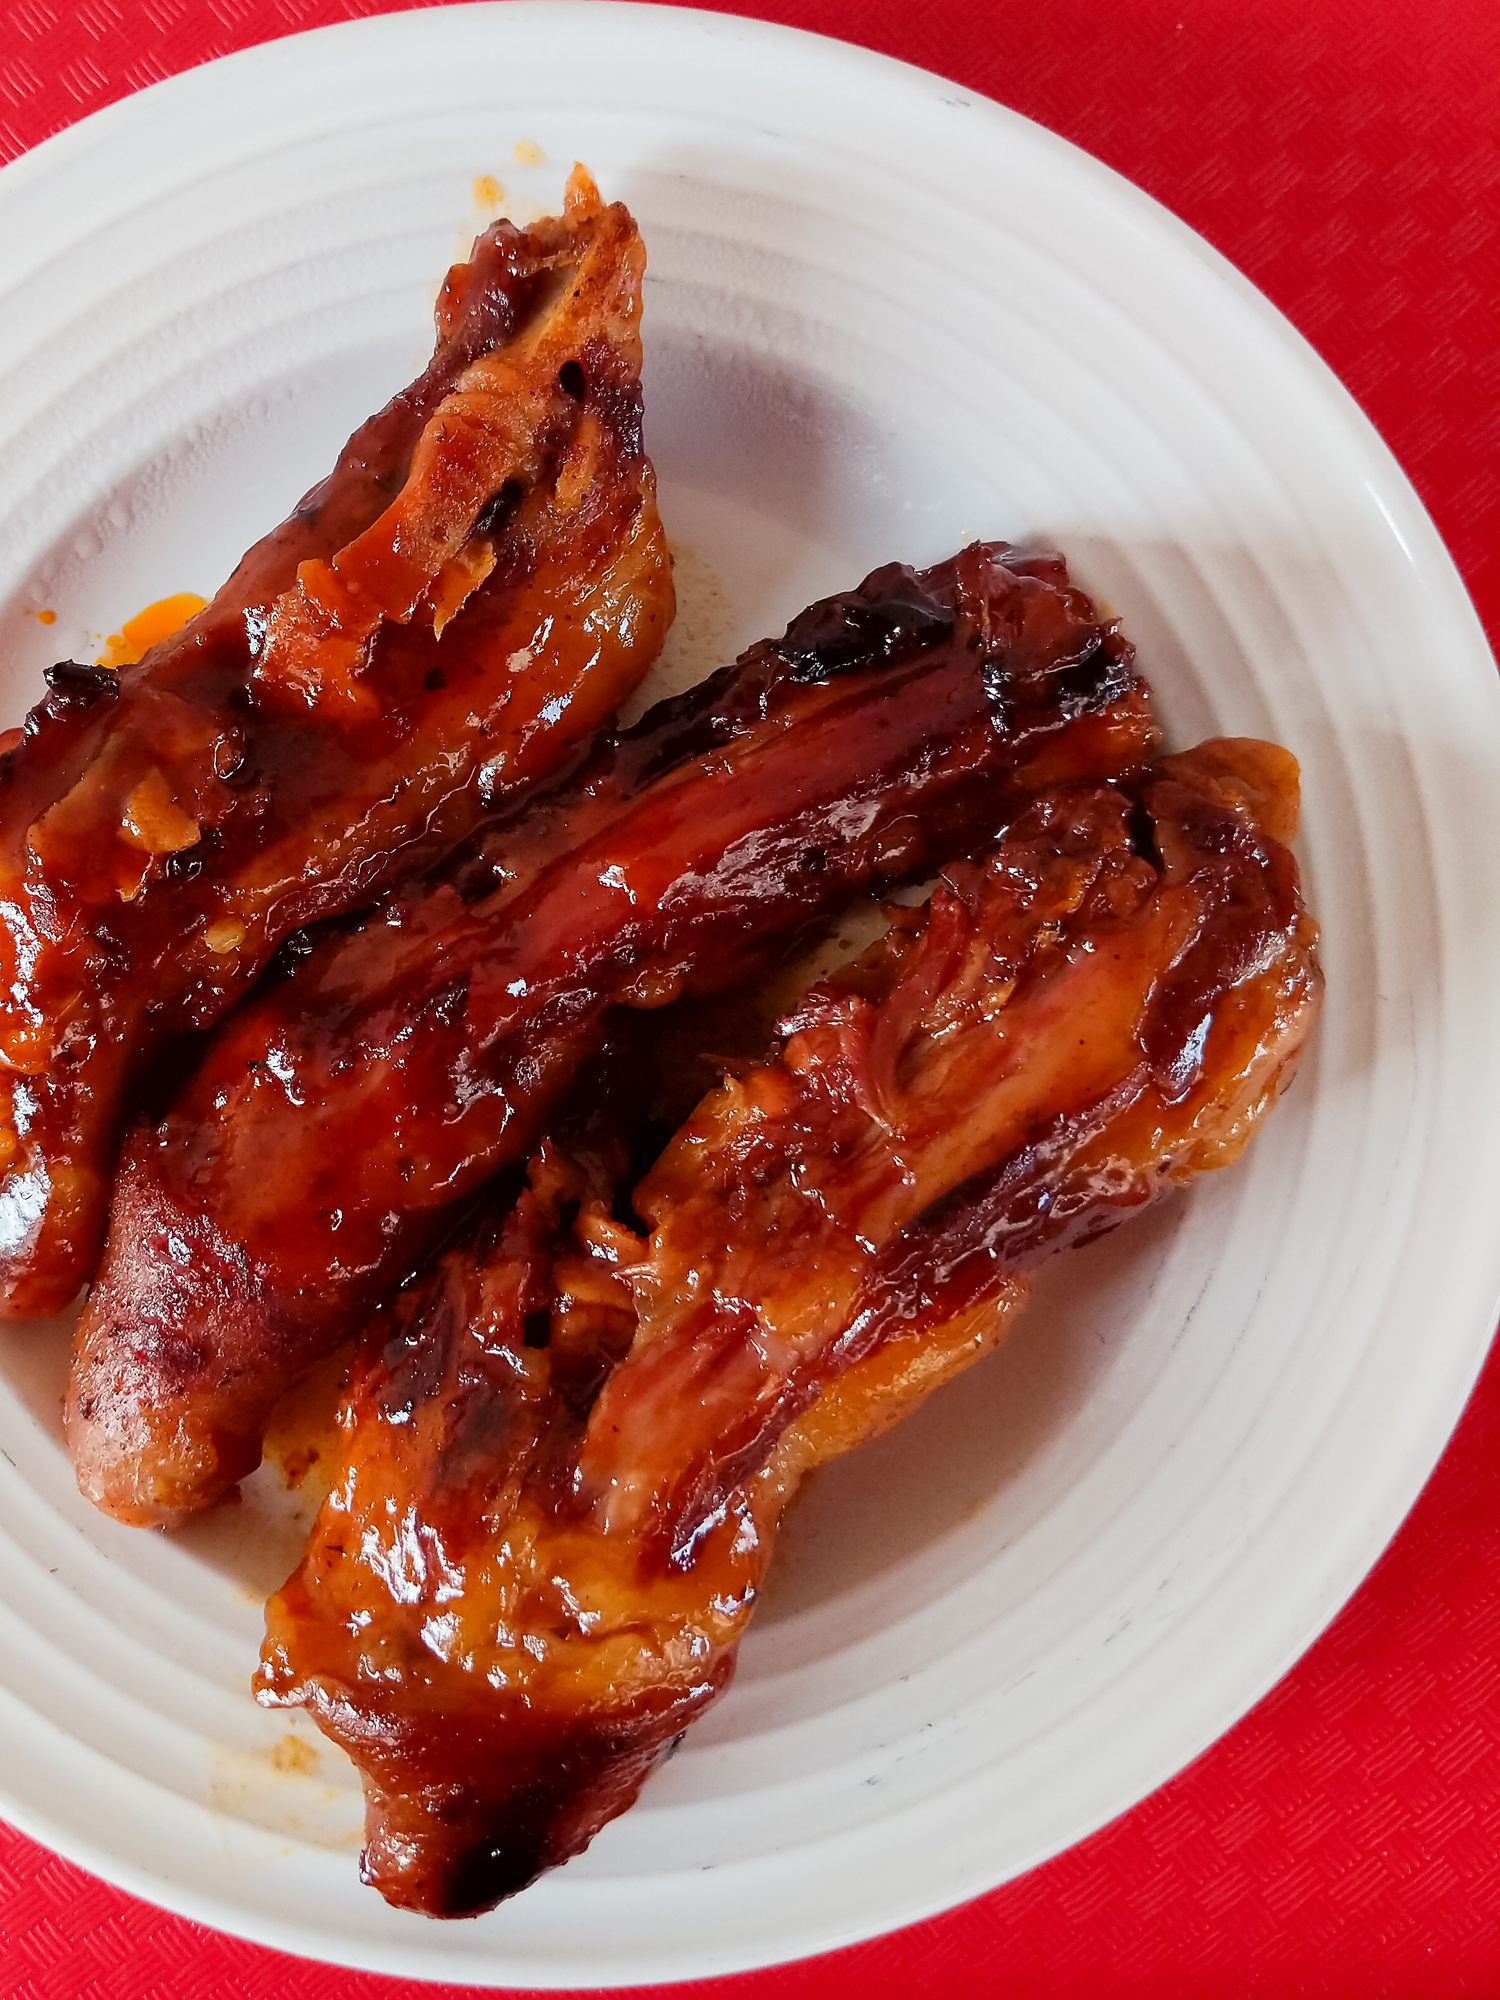 Barbecued pigs tails are just one Barbadian food to try, check out the other 22 Bajan foods to try in Barbados